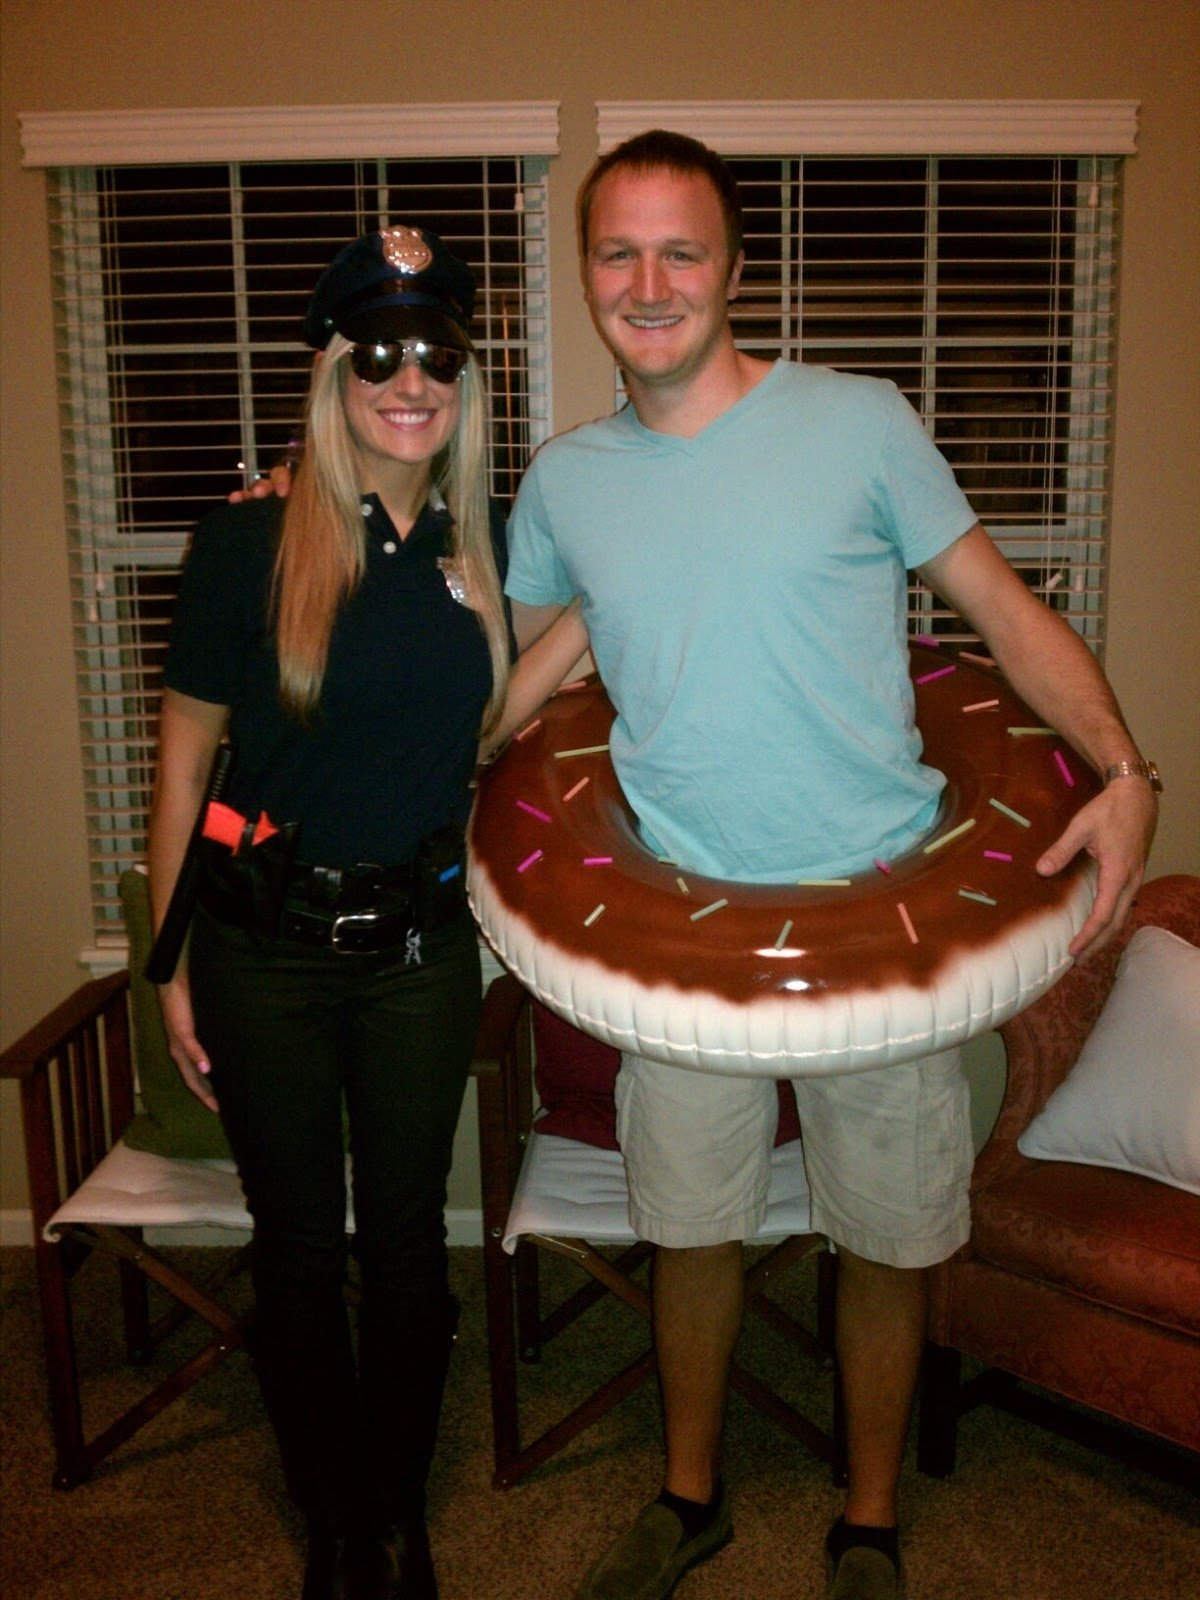 10 Famous Couples Halloween Costume Ideas For Adults 57 couples diy costumes best 25 halloween couples  sc 1 th 259 & 10 Famous Couples Halloween Costume Ideas For Adults